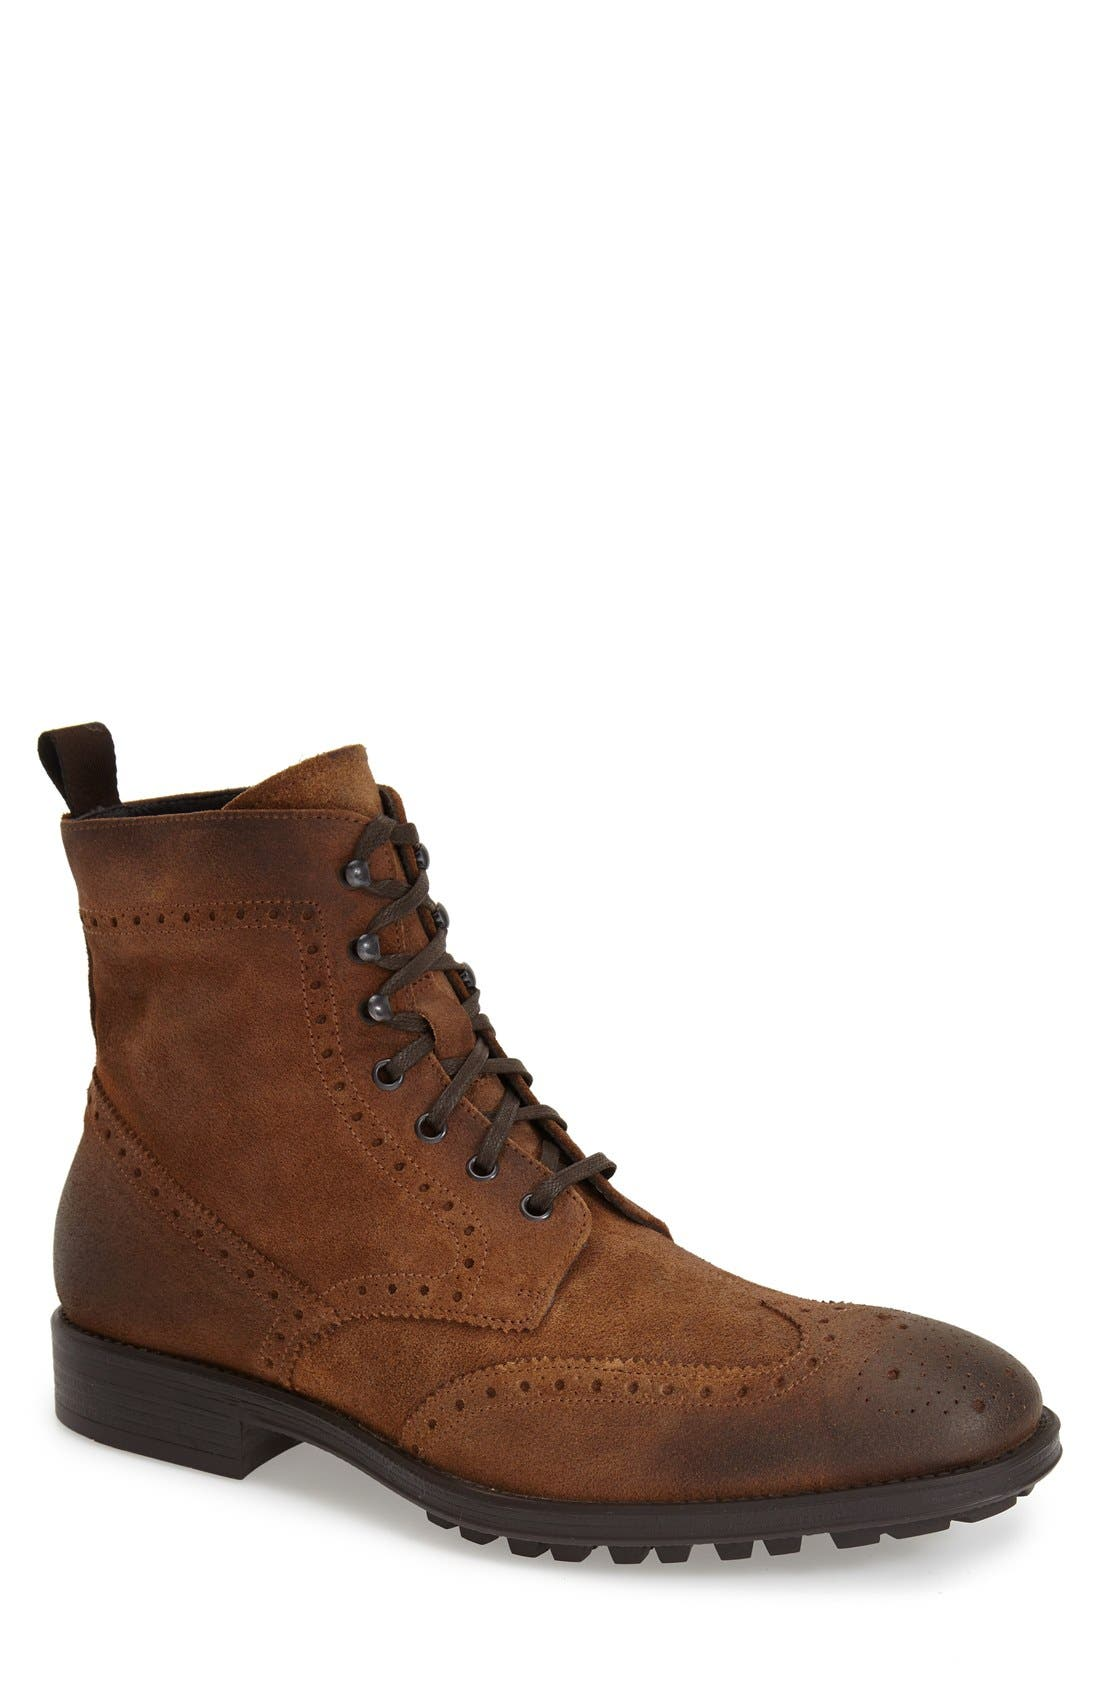 TO BOOT NEW YORK, 'Braeden Mid' Wingtip Boot, Main thumbnail 1, color, 231